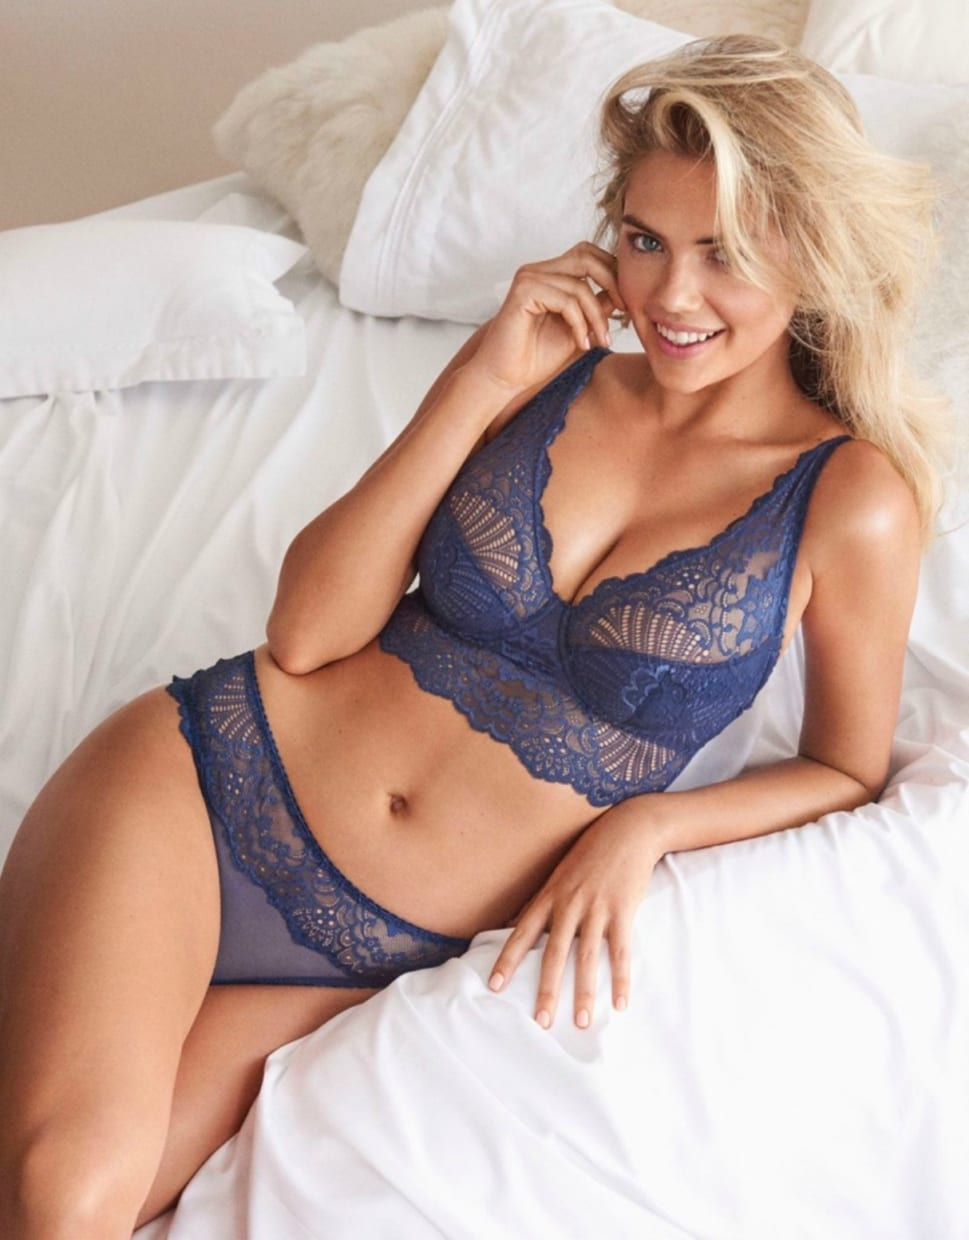 Kate Upton for Yamamay Lingerie SS18 NSFW - Average Joes